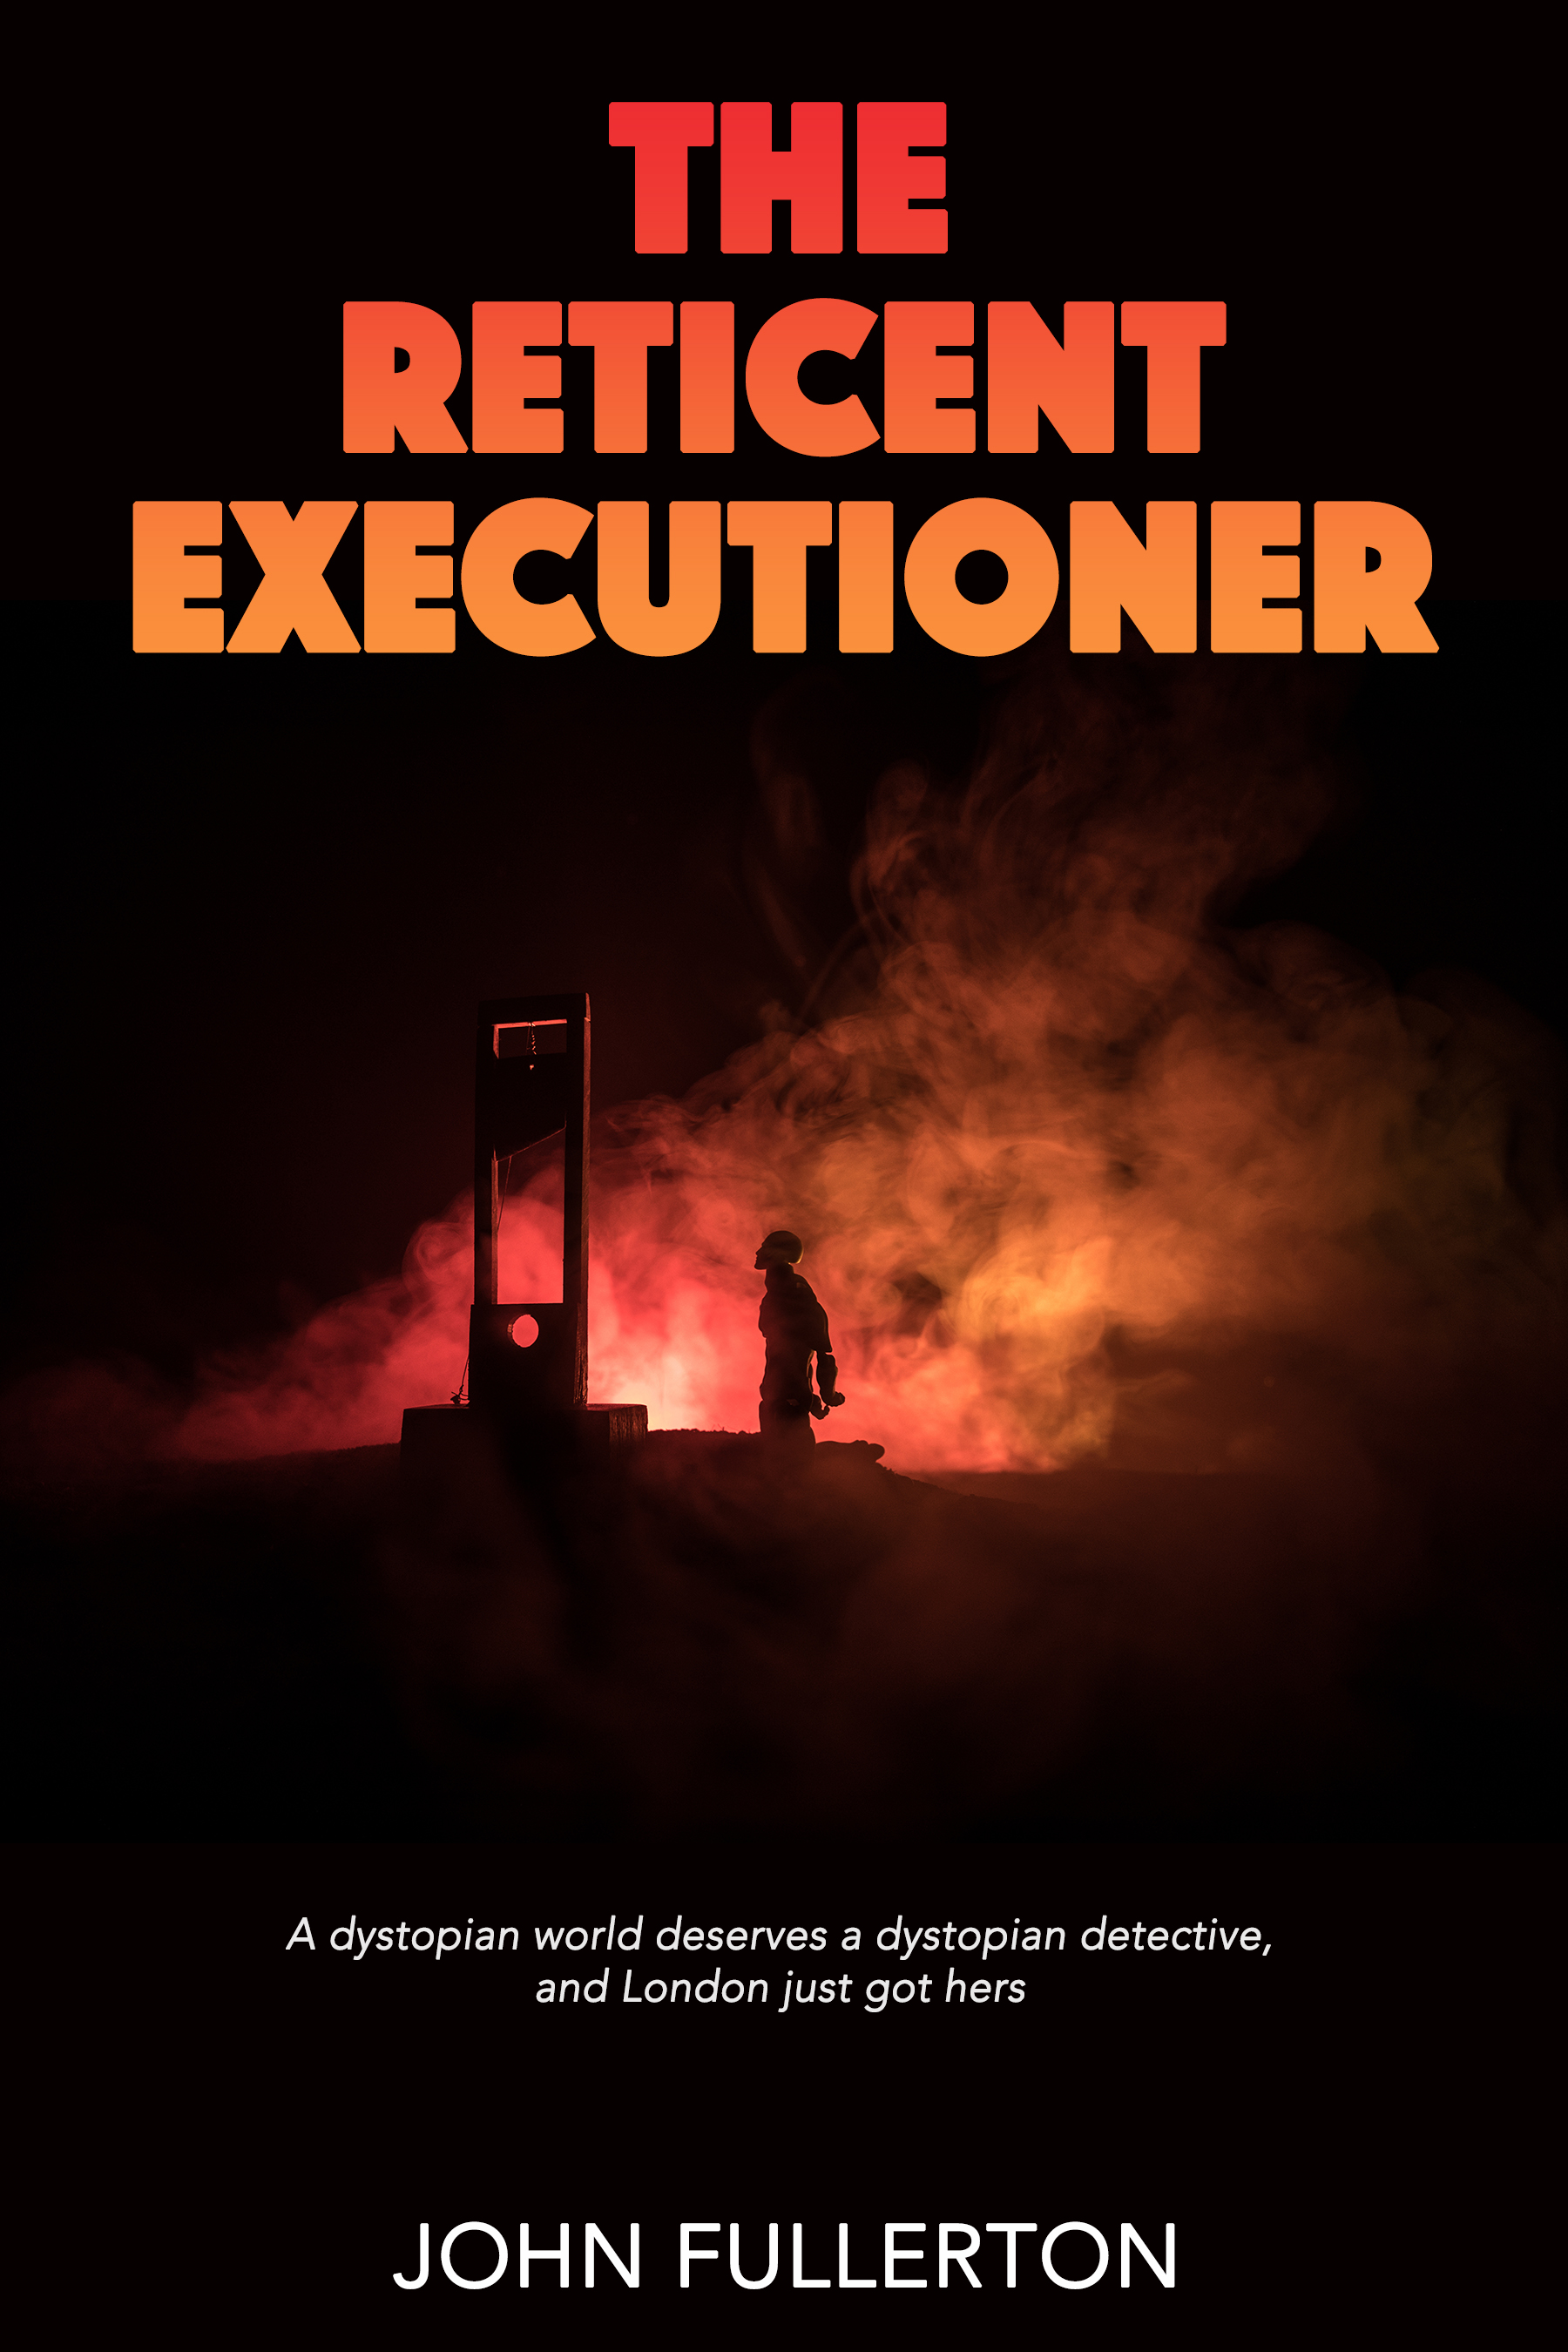 The Reticent Executioner